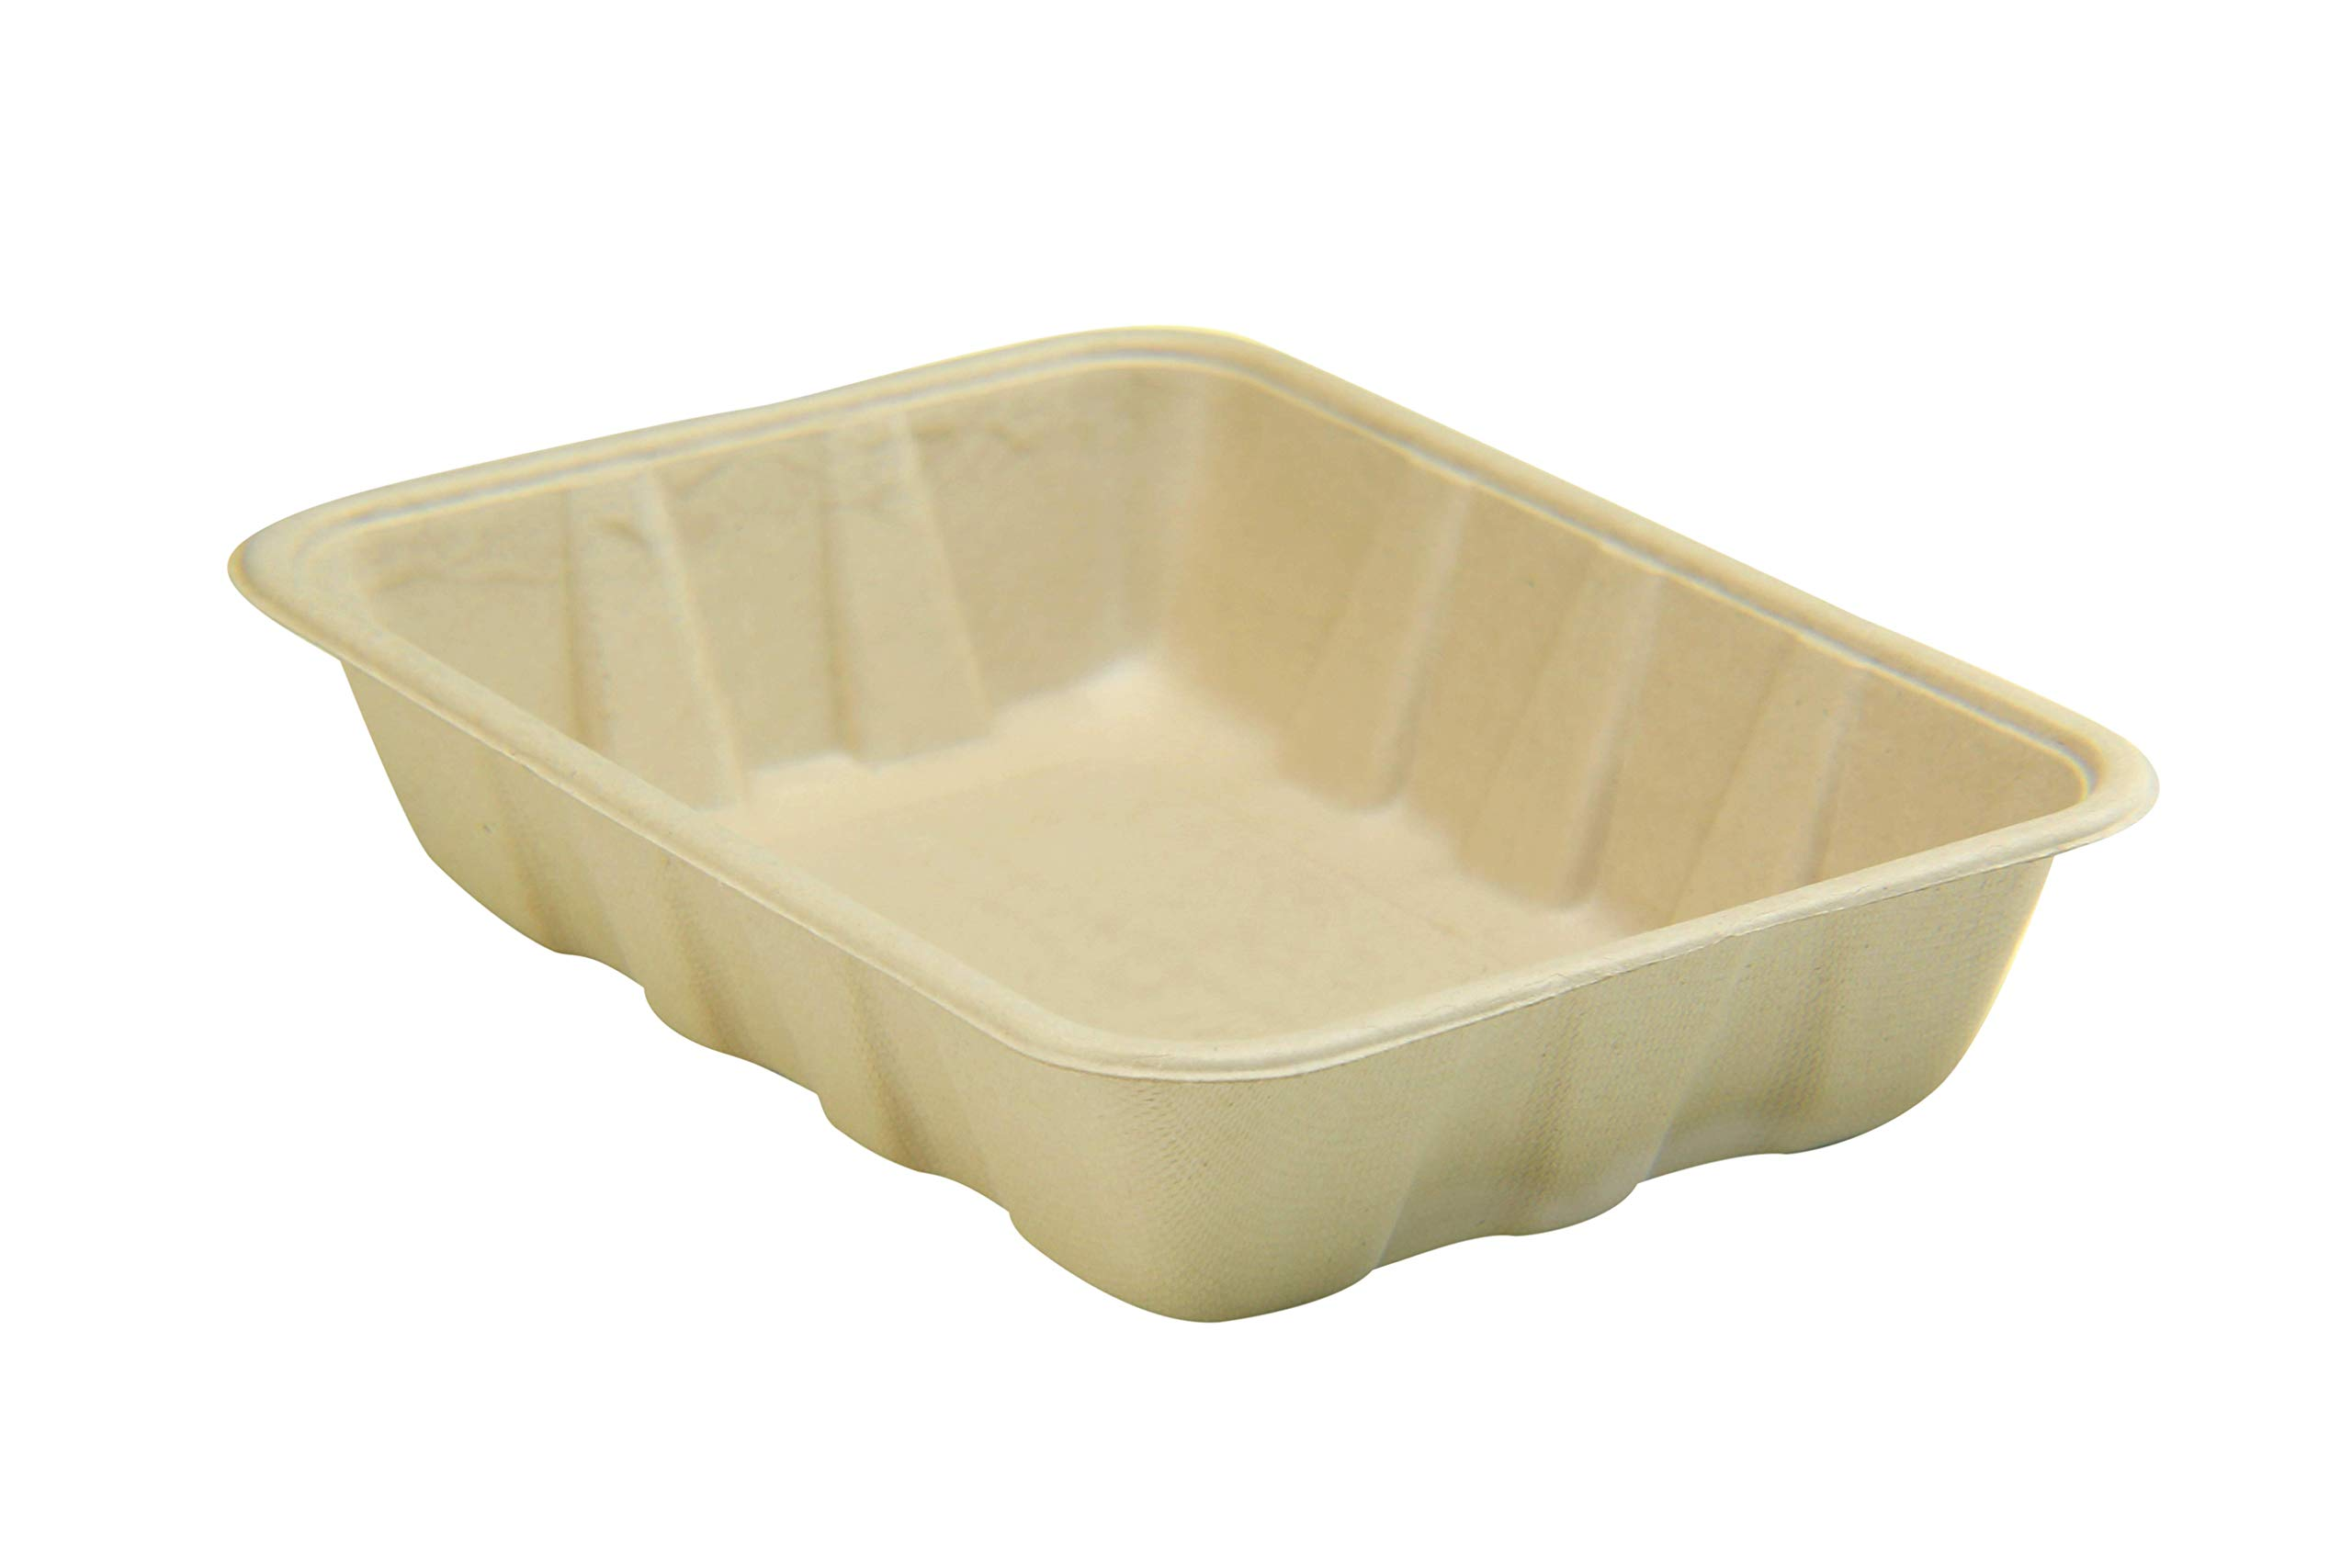 [400 COUNT] 32oz 32oz Compostable Eco Friendly Container Trays - Deep Containers made from Plant Fibers for Meal Prep Dinnerware Plates Catering Bento Boxes Takeout 100% by products